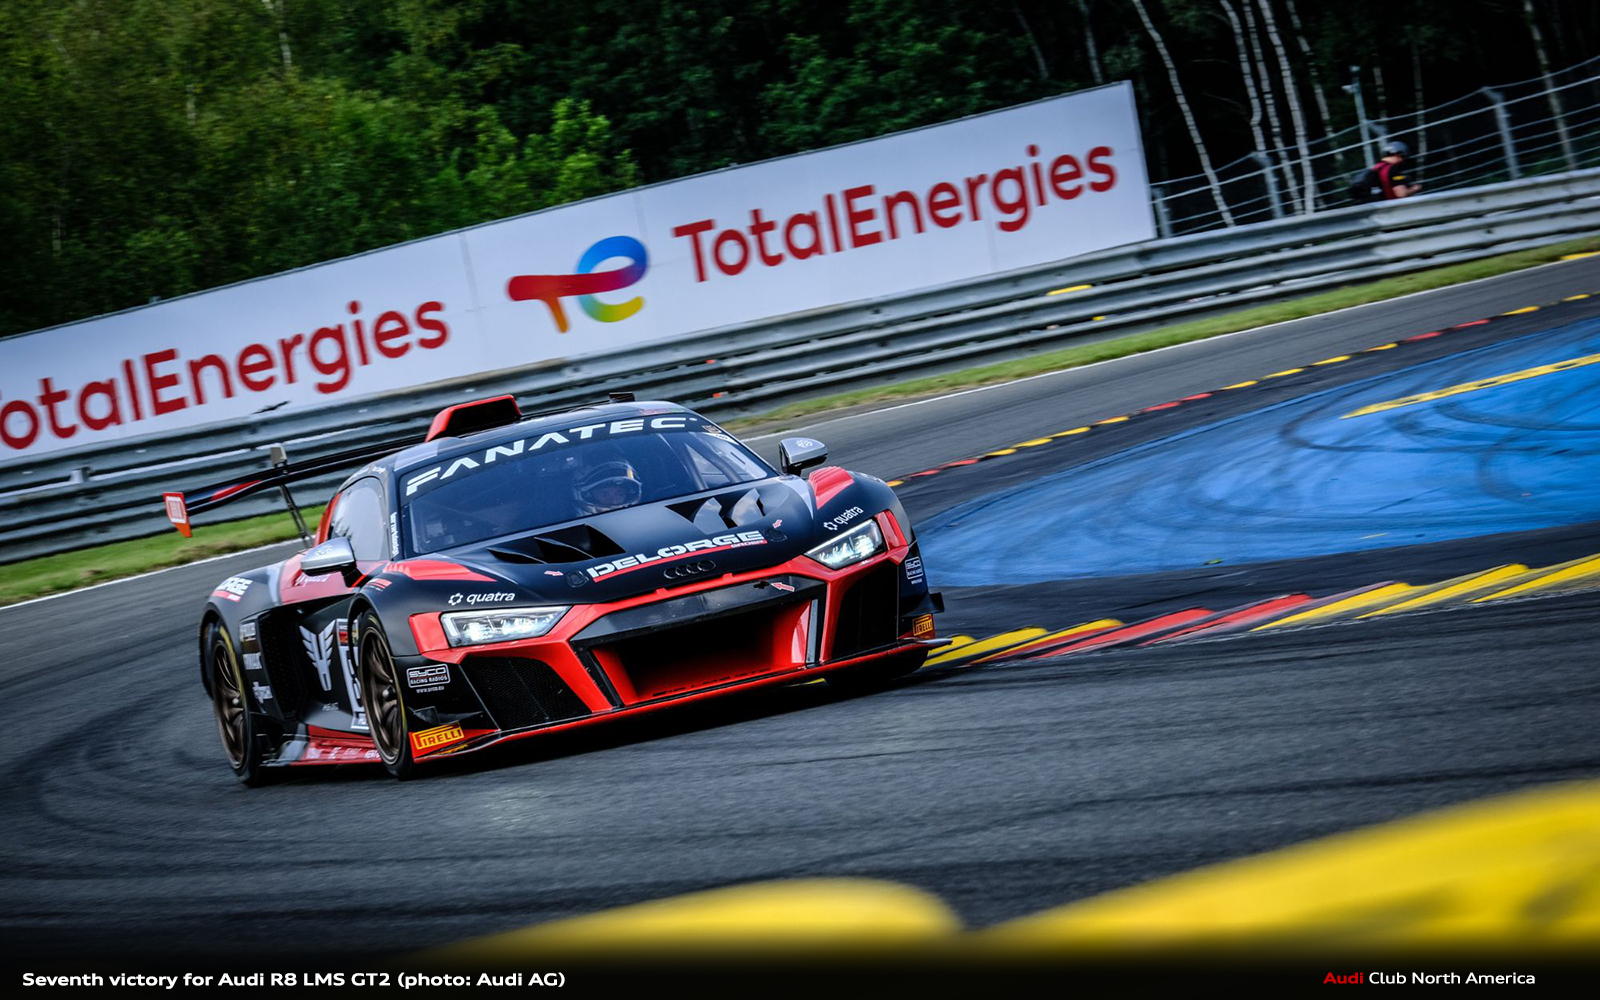 Seventh Victory for Audi R8 LMS GT2